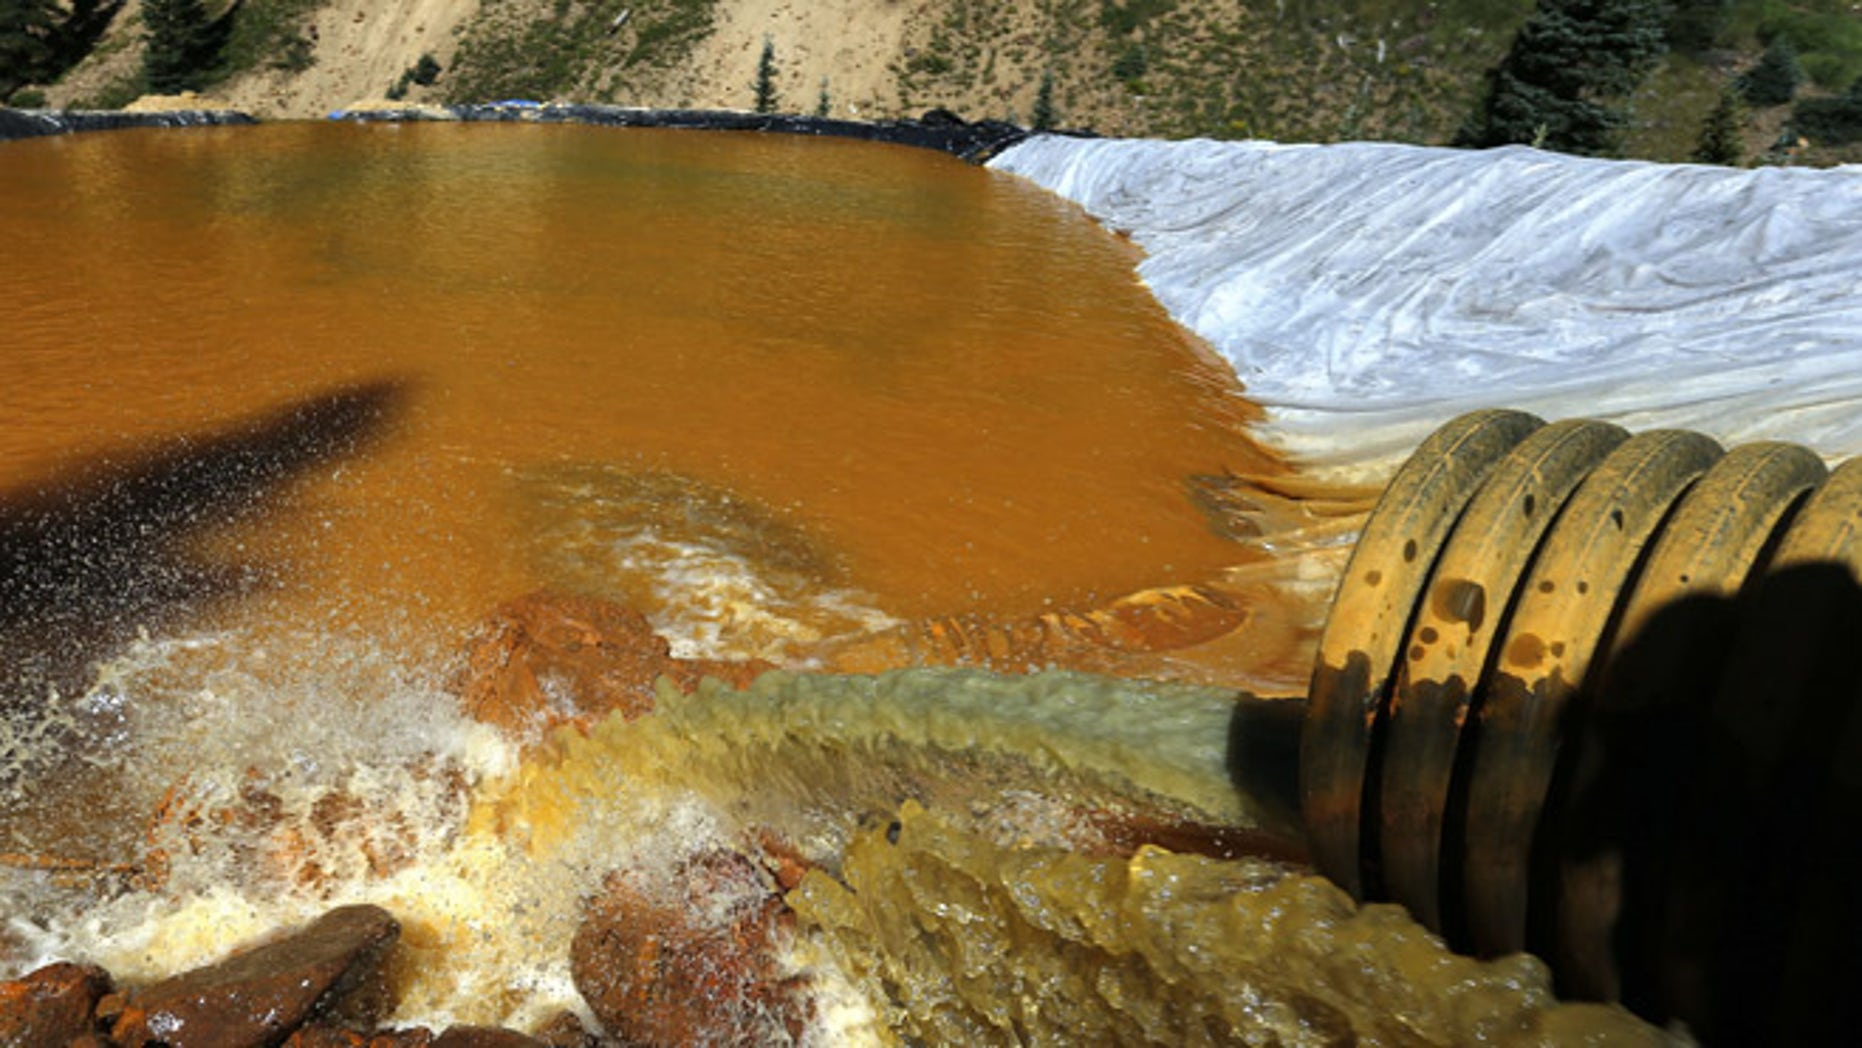 Aug. 14, 2015: Water flows through a series of sediment retention ponds built to reduce heavy metal and chemical contaminants from the Gold King Mine wastewater accident, in the spillway about 1/4 mile downstream from the mine, outside Silverton, Colo.